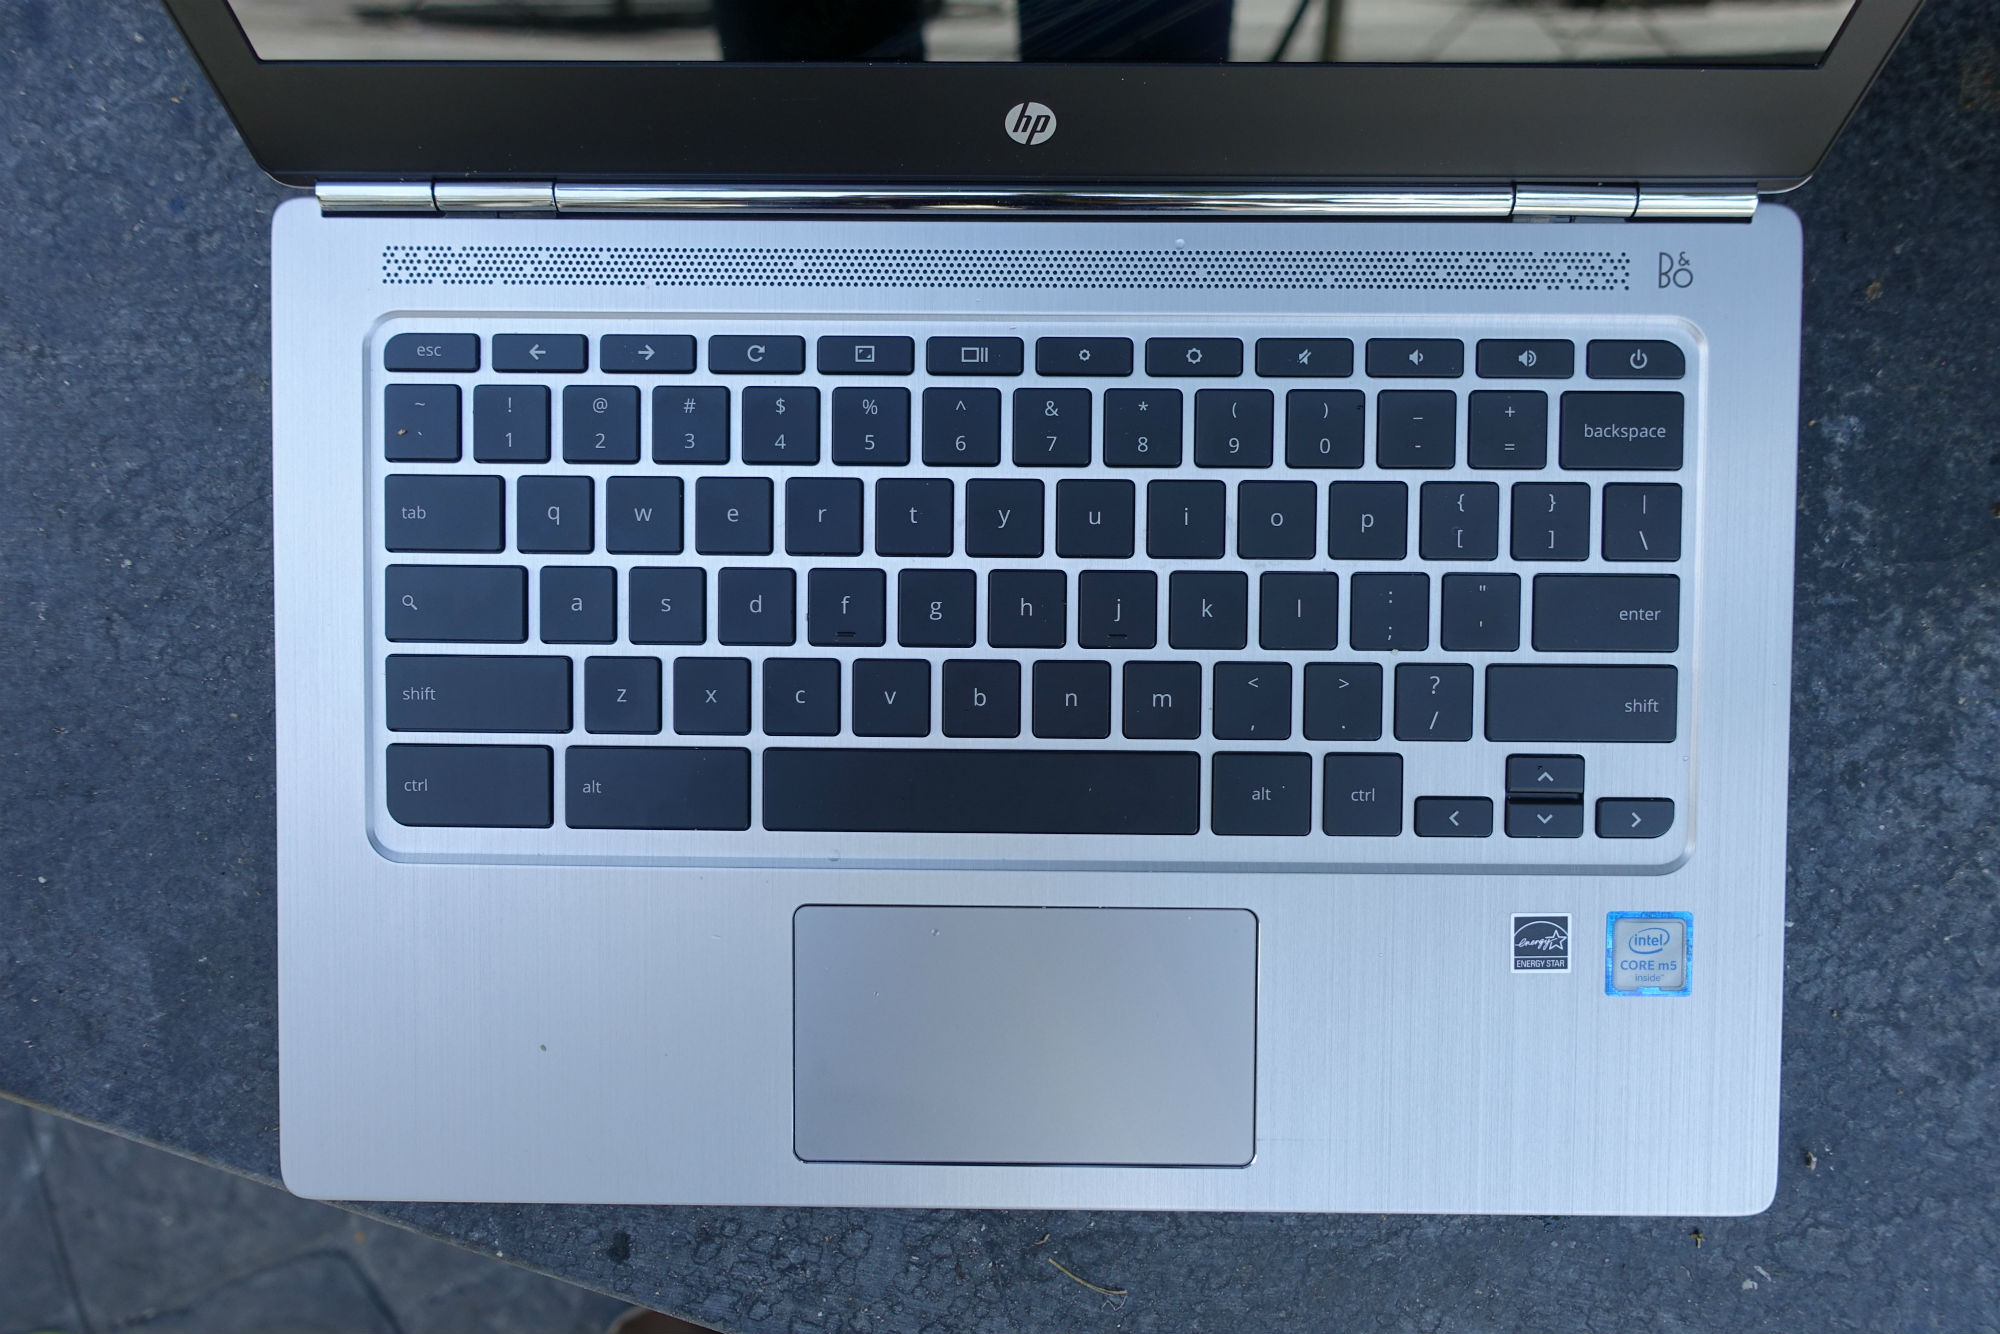 hpchromebook13 keyboard.jpg